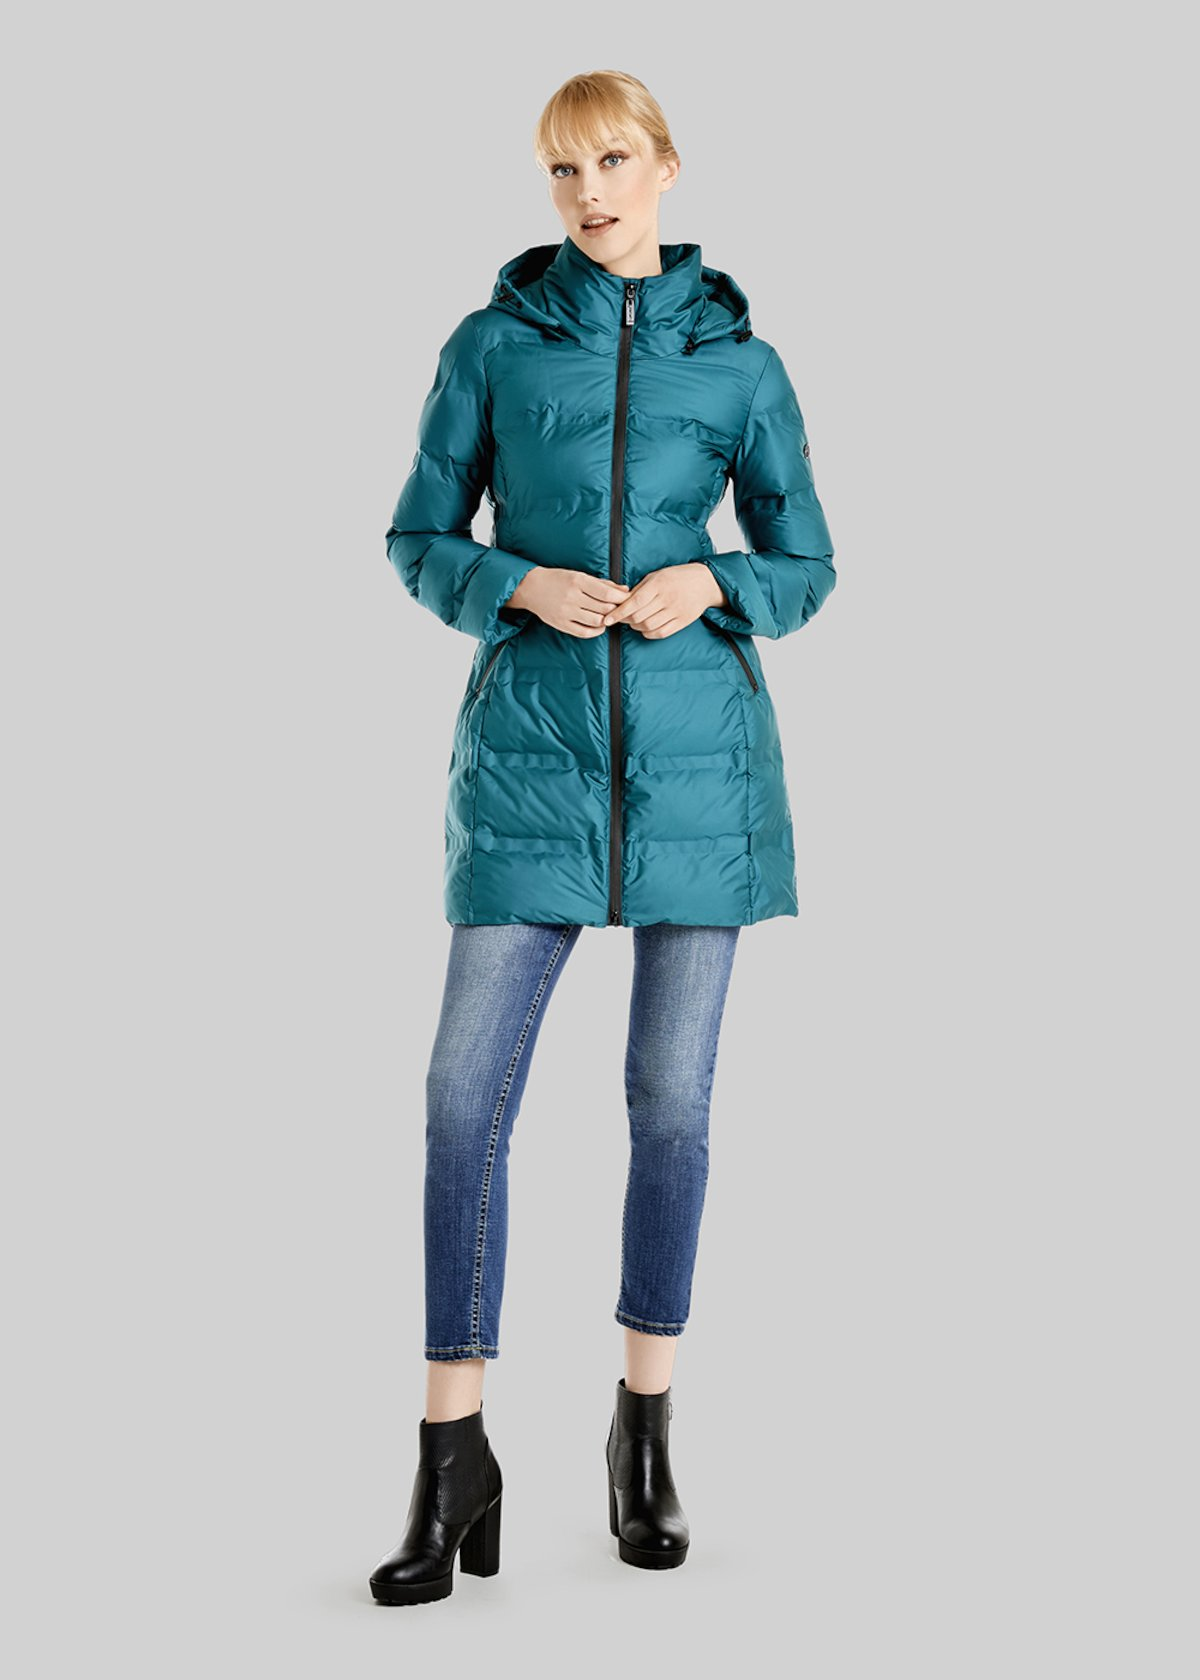 Pierre down jacket with removable hood